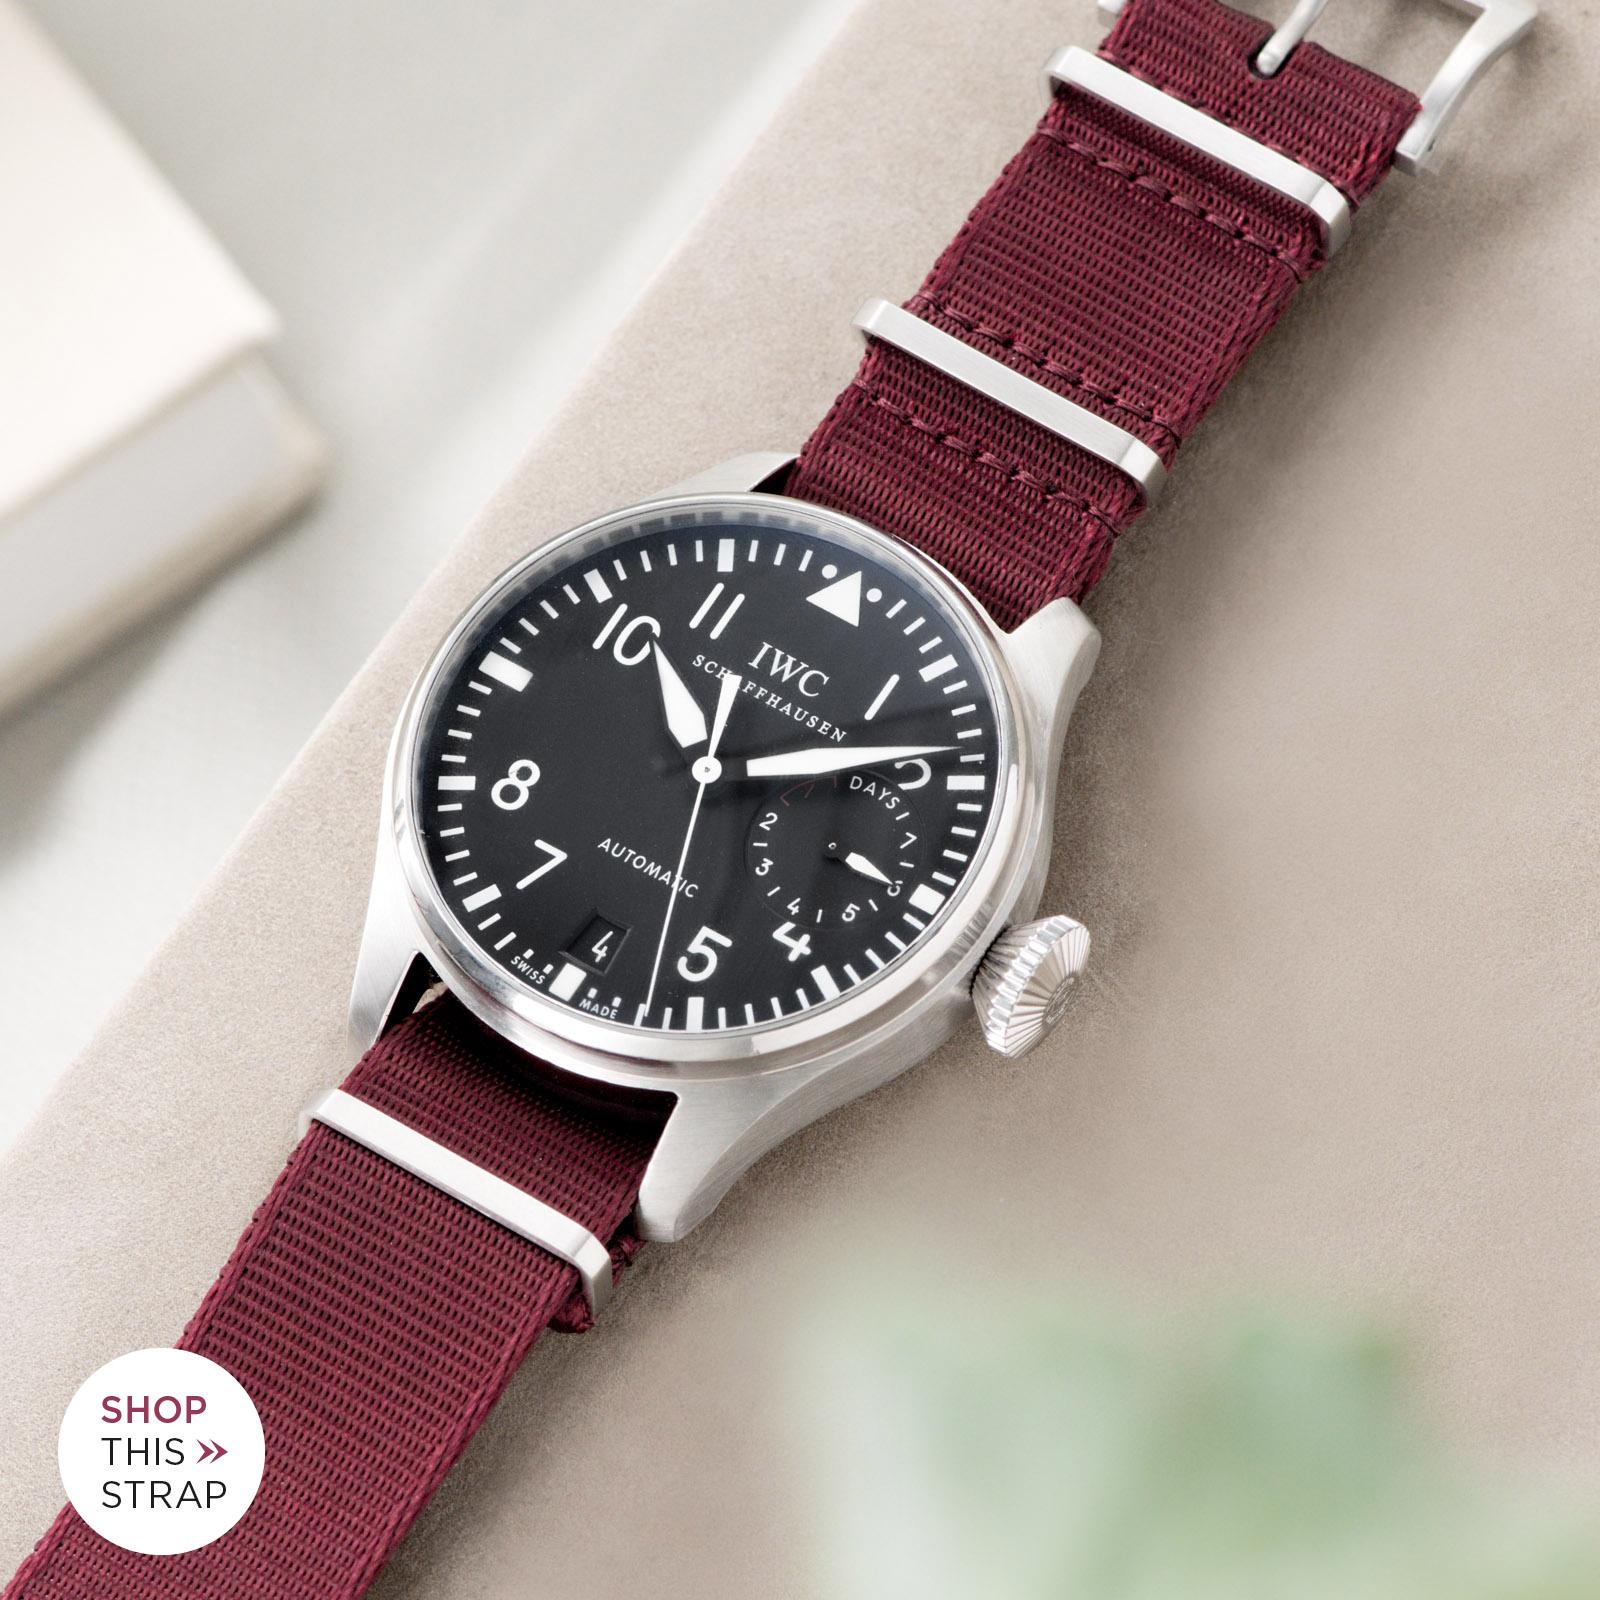 Bulang and Sons_Strap Guide_IWC Big Pilot ref IW5004_Deluxe Nylon Nato Watch Strap Burgundy Red